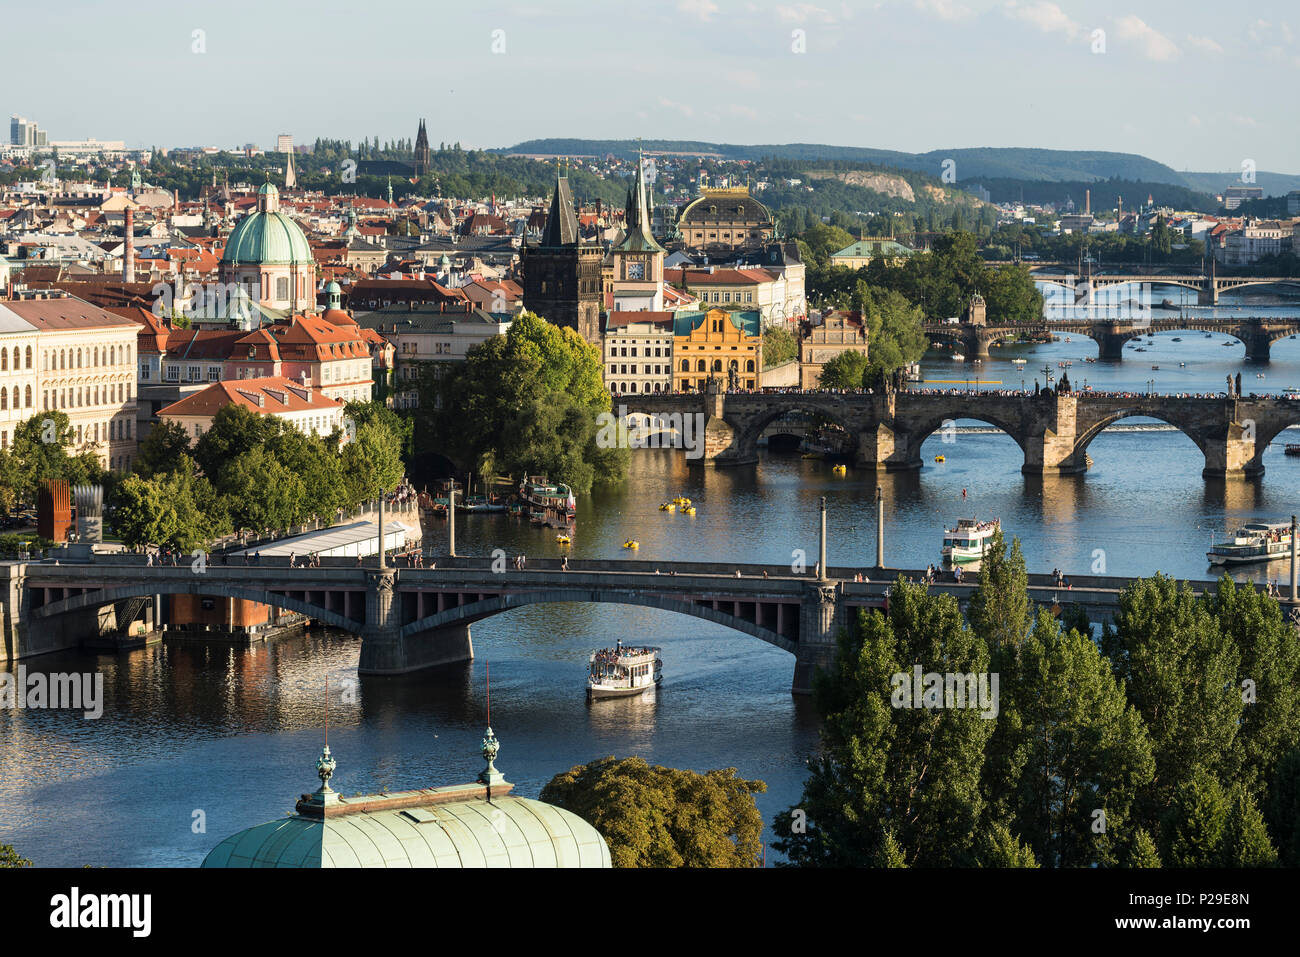 Prague. Czech Republic. View from Letná Park of the Vltava River and the Old Town (Staré Město). - Stock Image